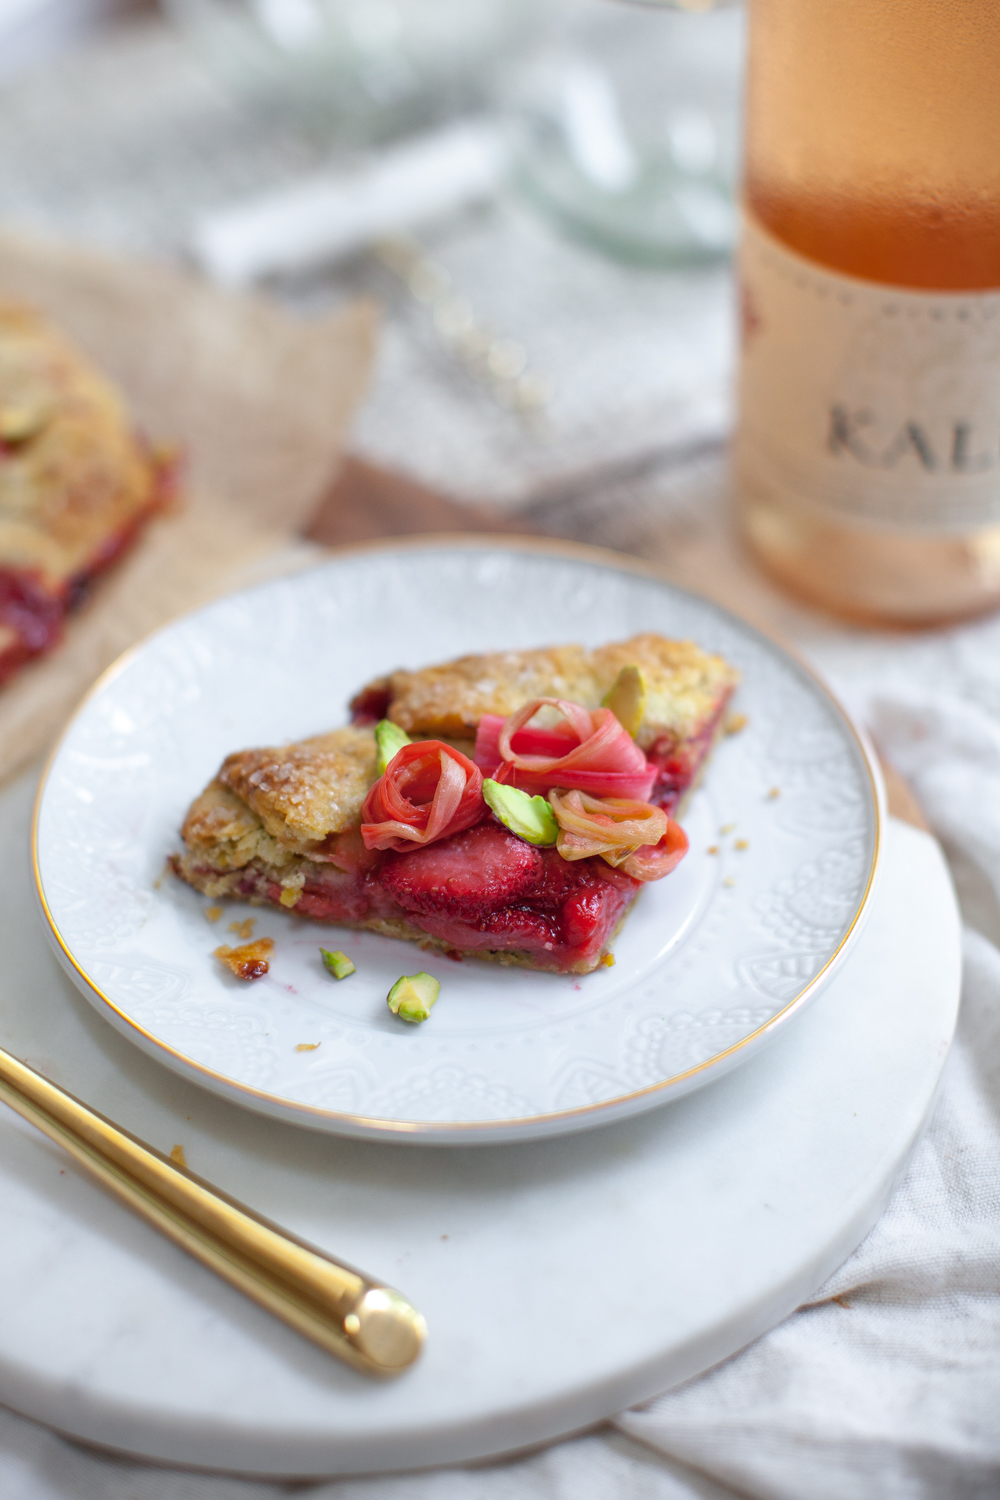 A little sliver of the Rhubarb Rose Strawberry Pistachio Galettes and some Kale Wines Rosé, almost too pretty to imbibe.